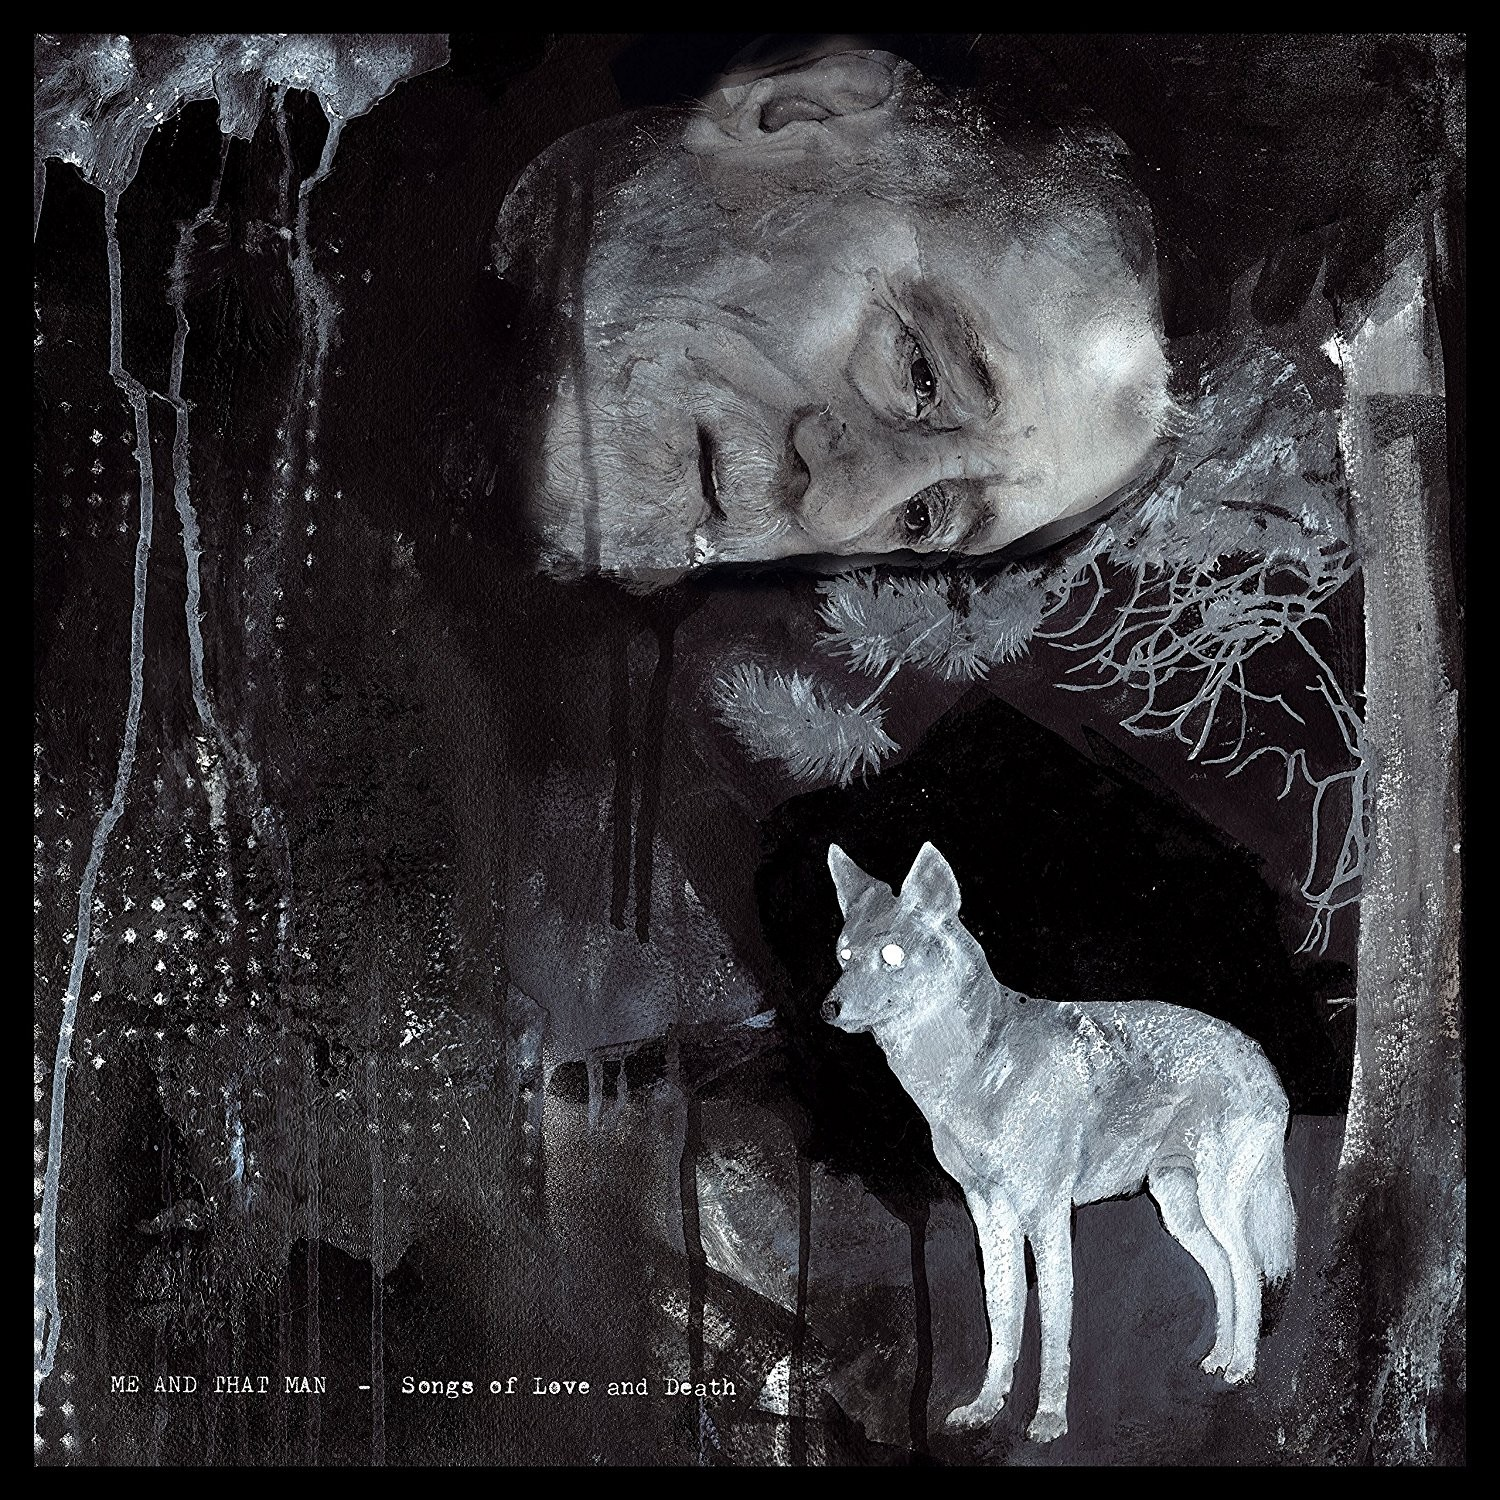 Me and That Man - Songs of Love and Death - CD